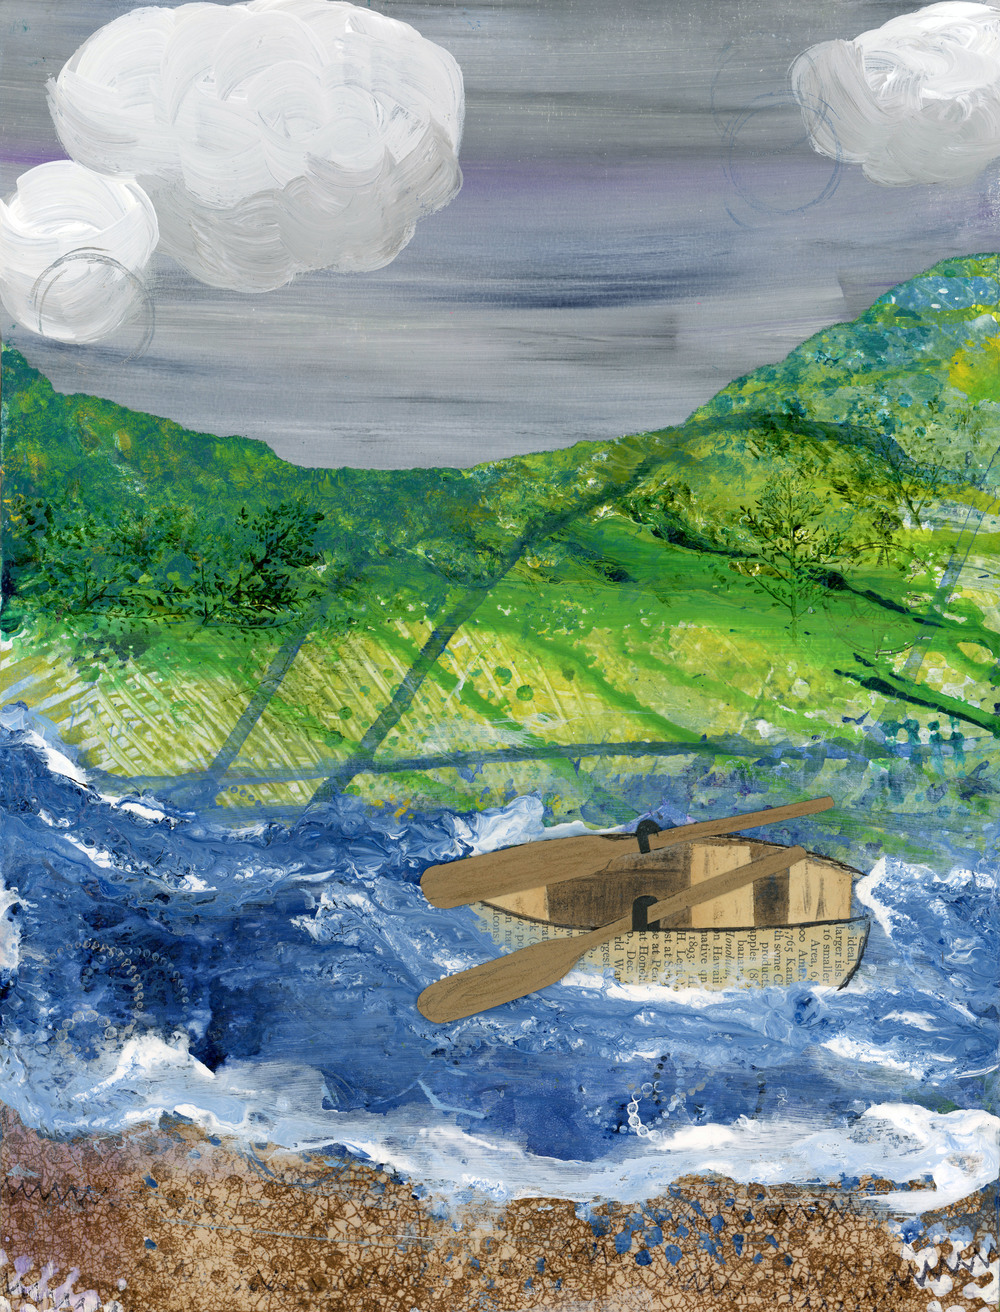 Mountain Boat (2015)